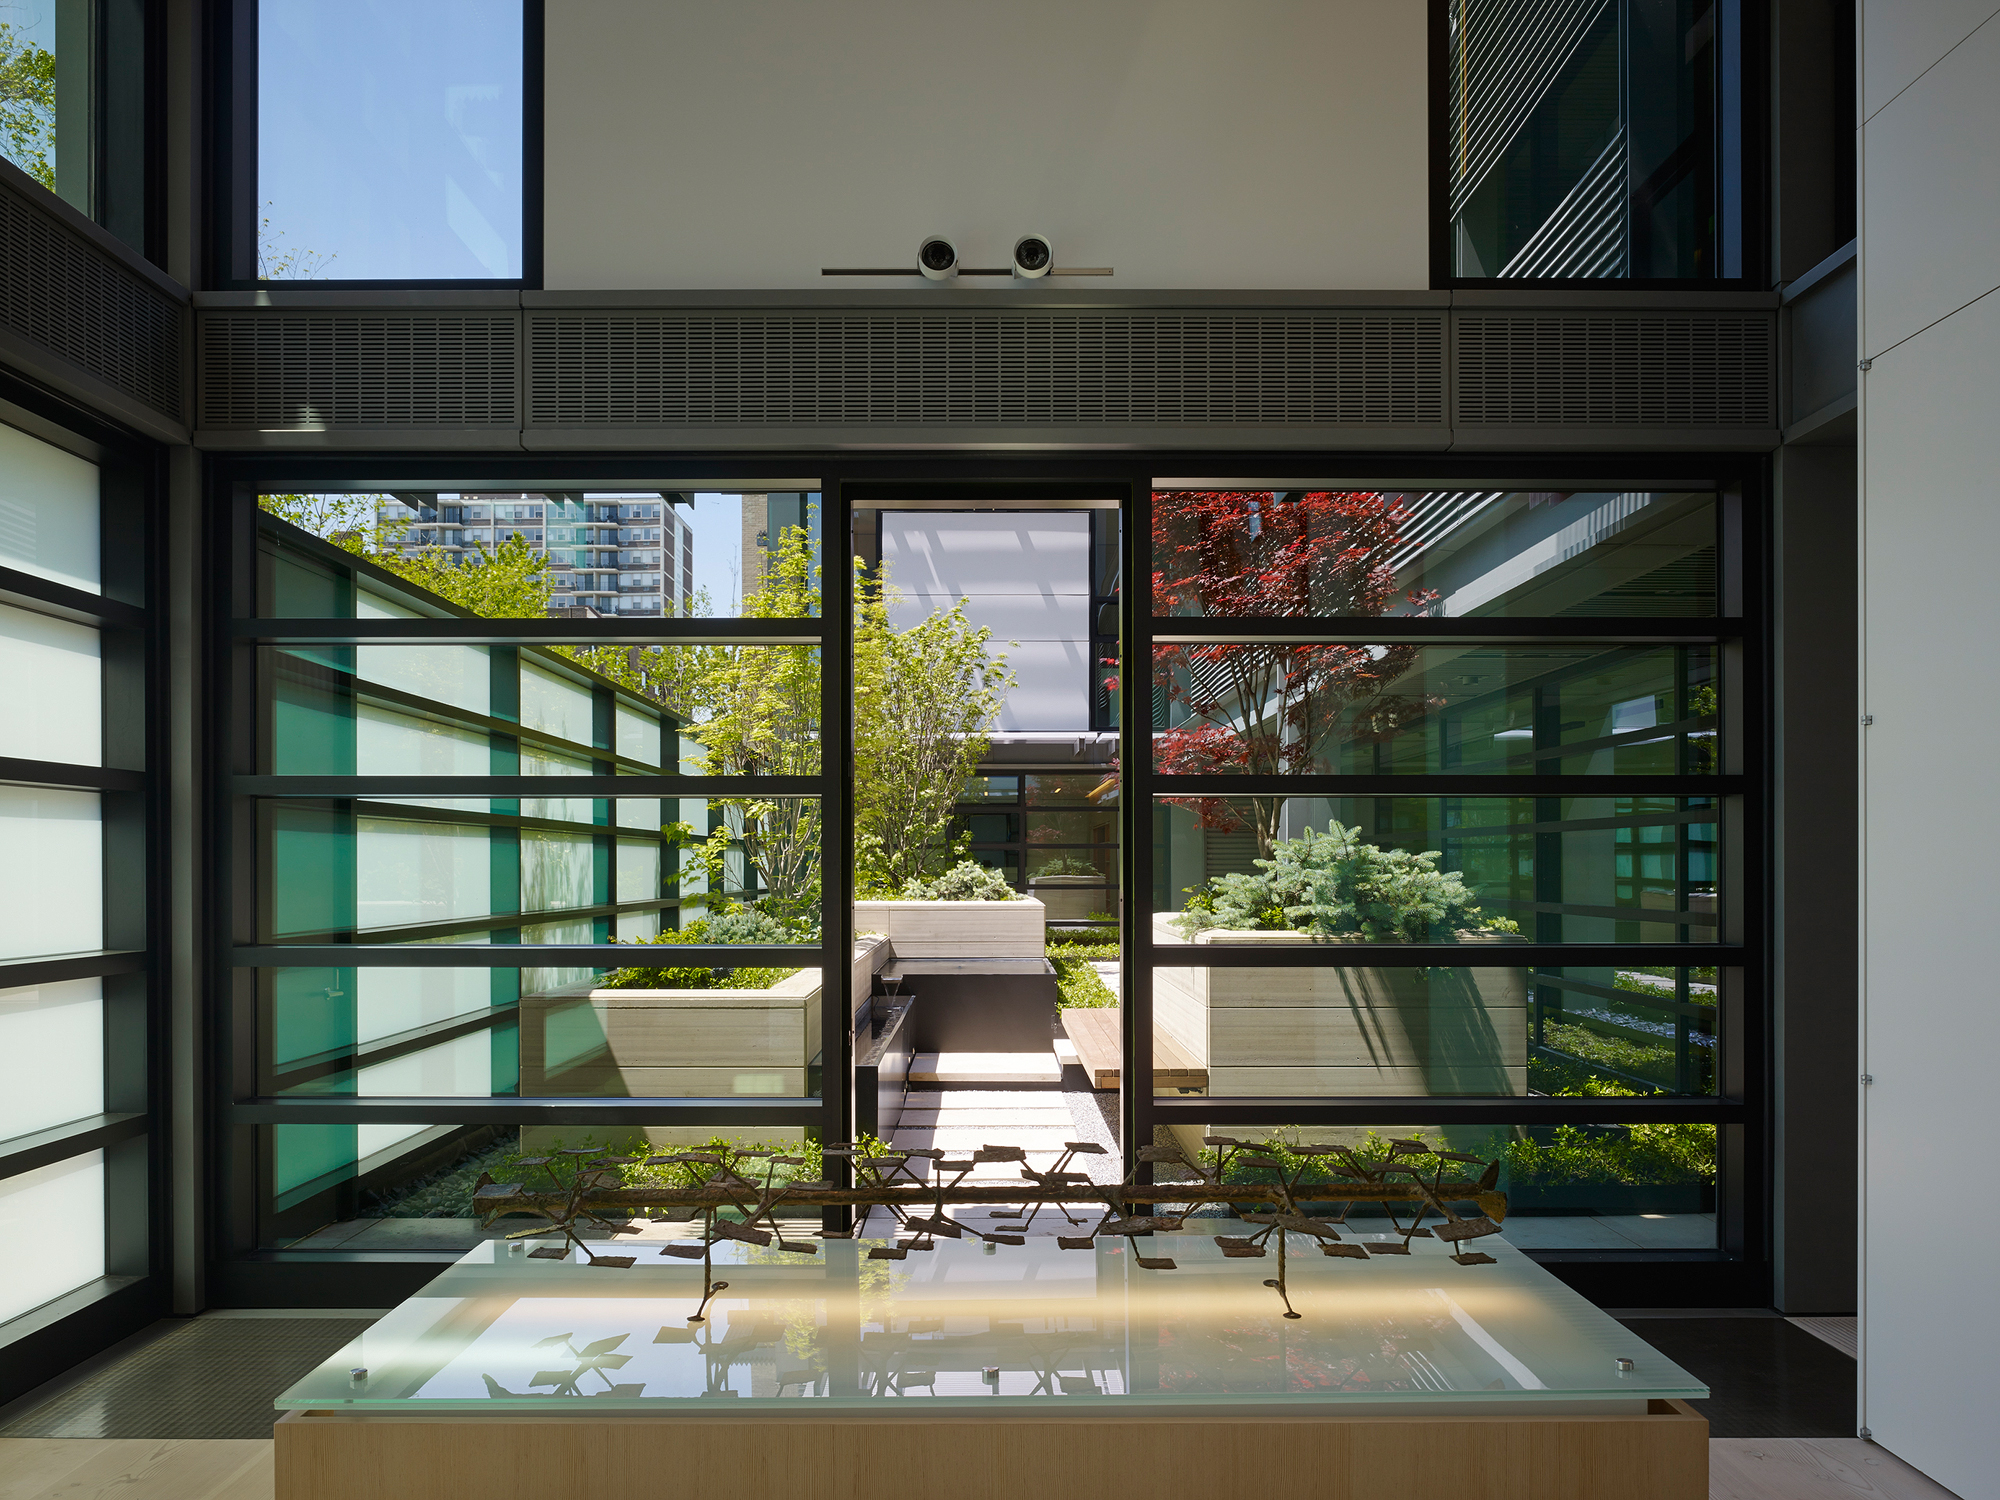 Residence  Tigerman McCurry Architects  Chicago, IL    Return to Projects